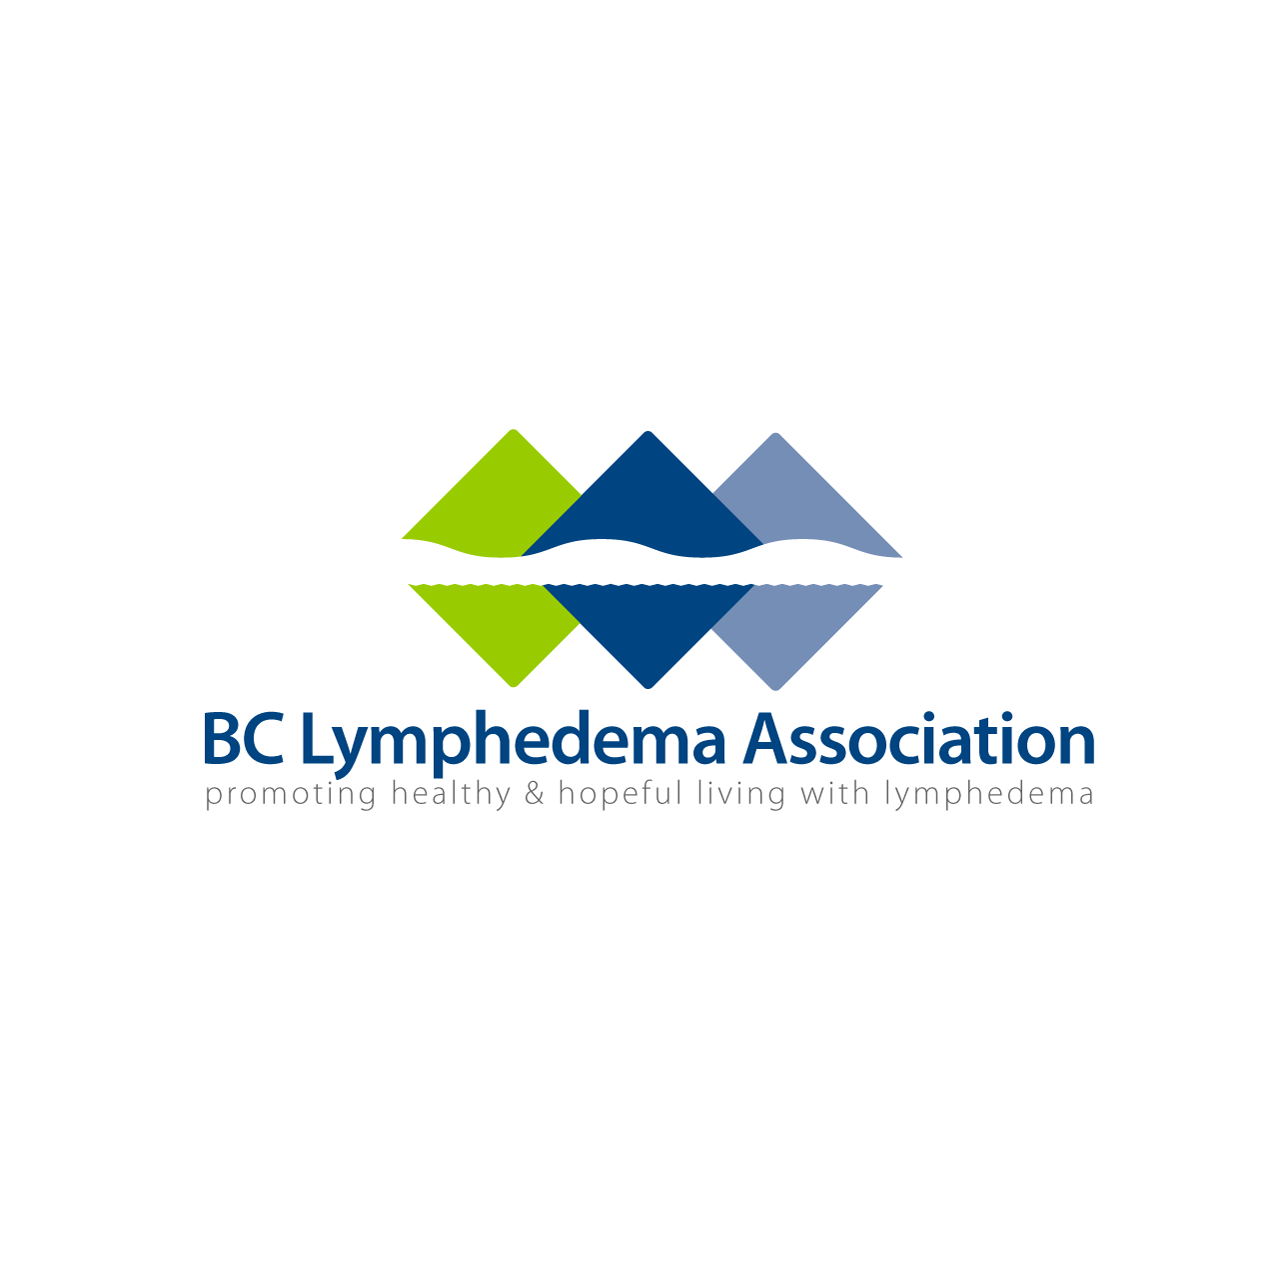 Logo Design by umxca - Entry No. 42 in the Logo Design Contest BC Lymphedema Association.